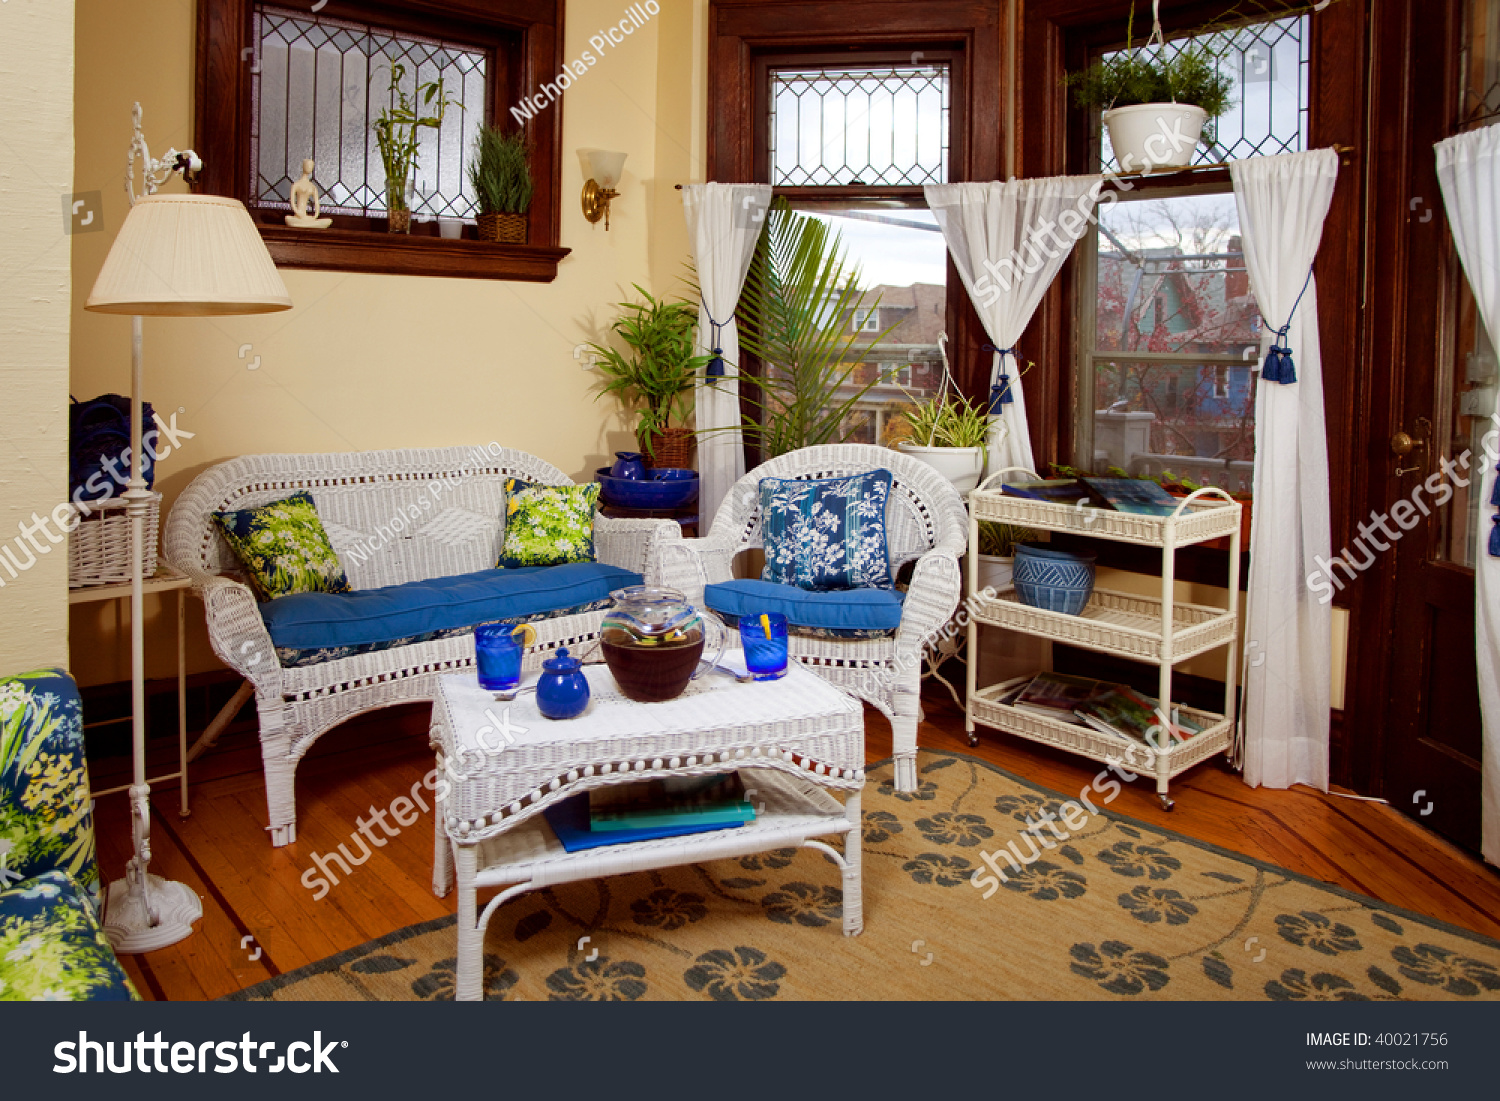 Sitting Room Or Sunroom With Wicker Furniture